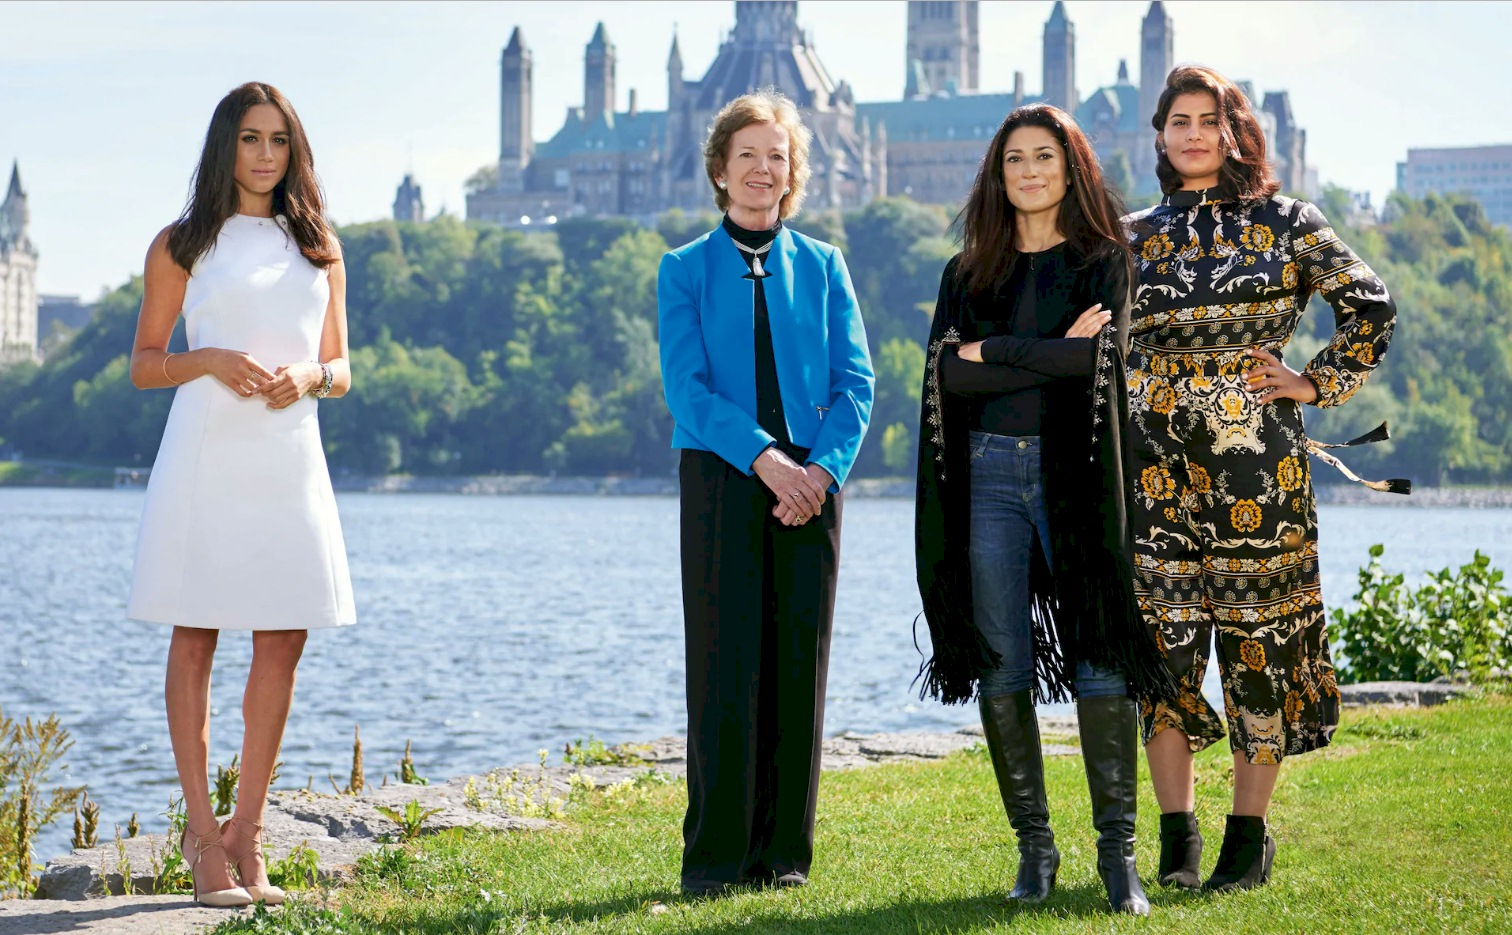 Meghan Markle appeared in the April issue of Vanity Fair along with Saudi activist Loujain al-Hathloul at the One Young World Summit in Ottawa in October 2016 CREDIT: Vanity Fair / JASON SCHMIDT